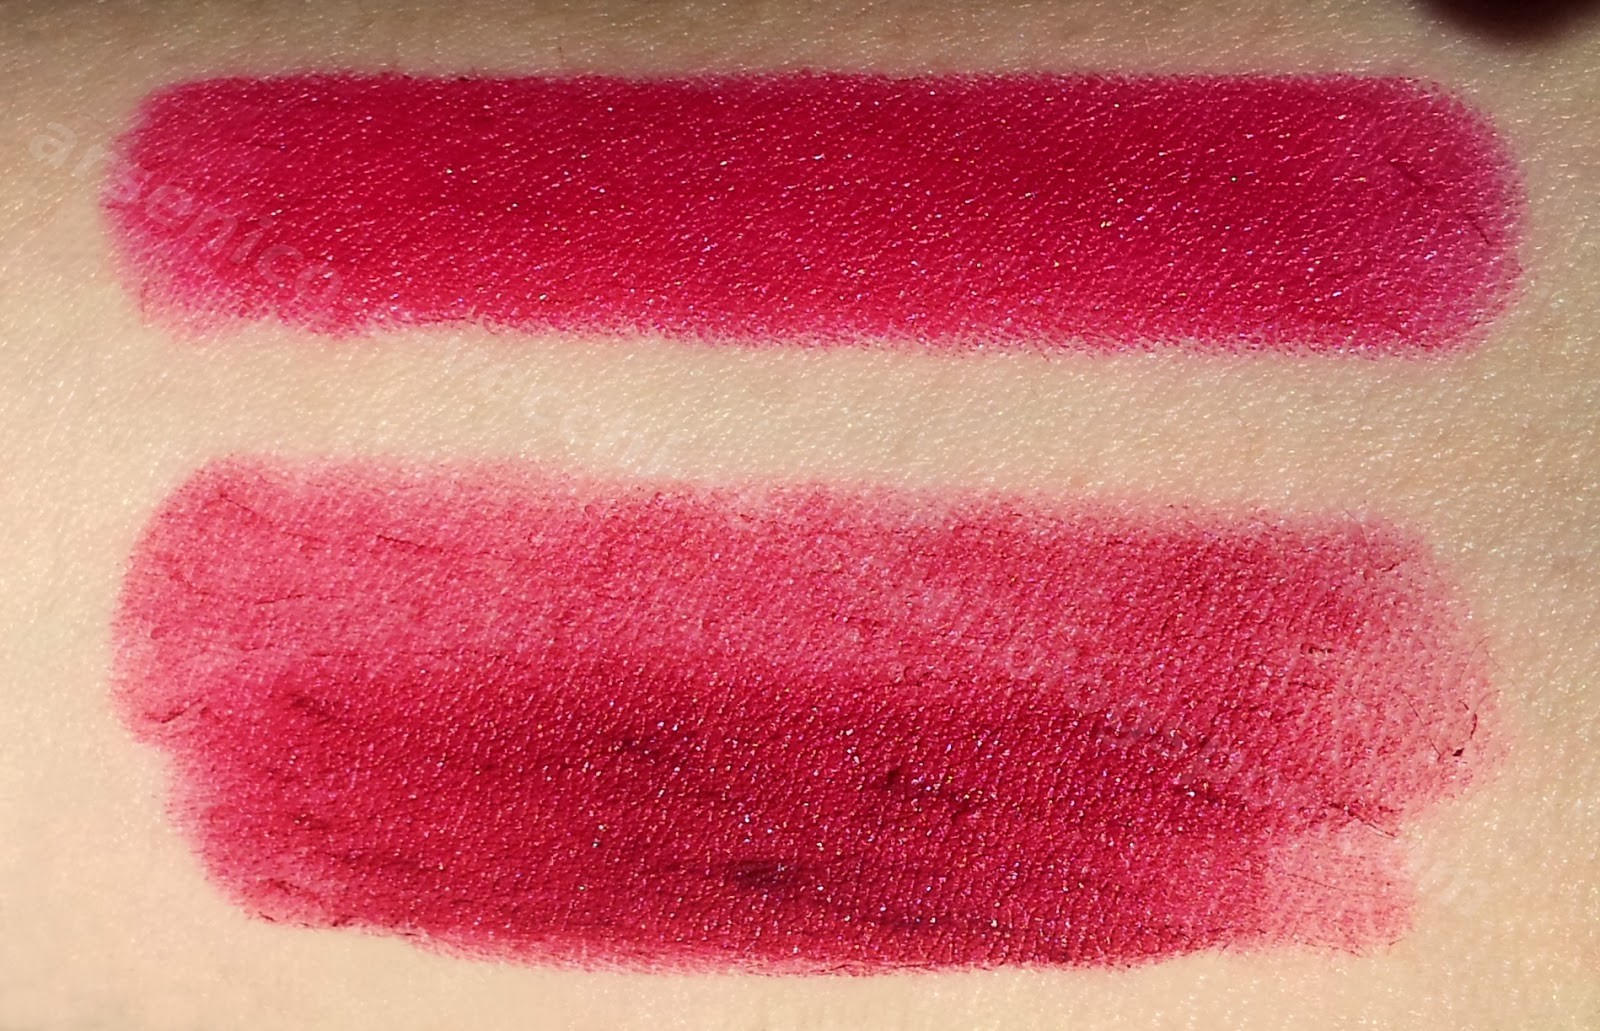 Chanel rossetto Rouge Allure Velvet #327 La Désirée swatch Rimmel Lasting Finish Kate Moss 09